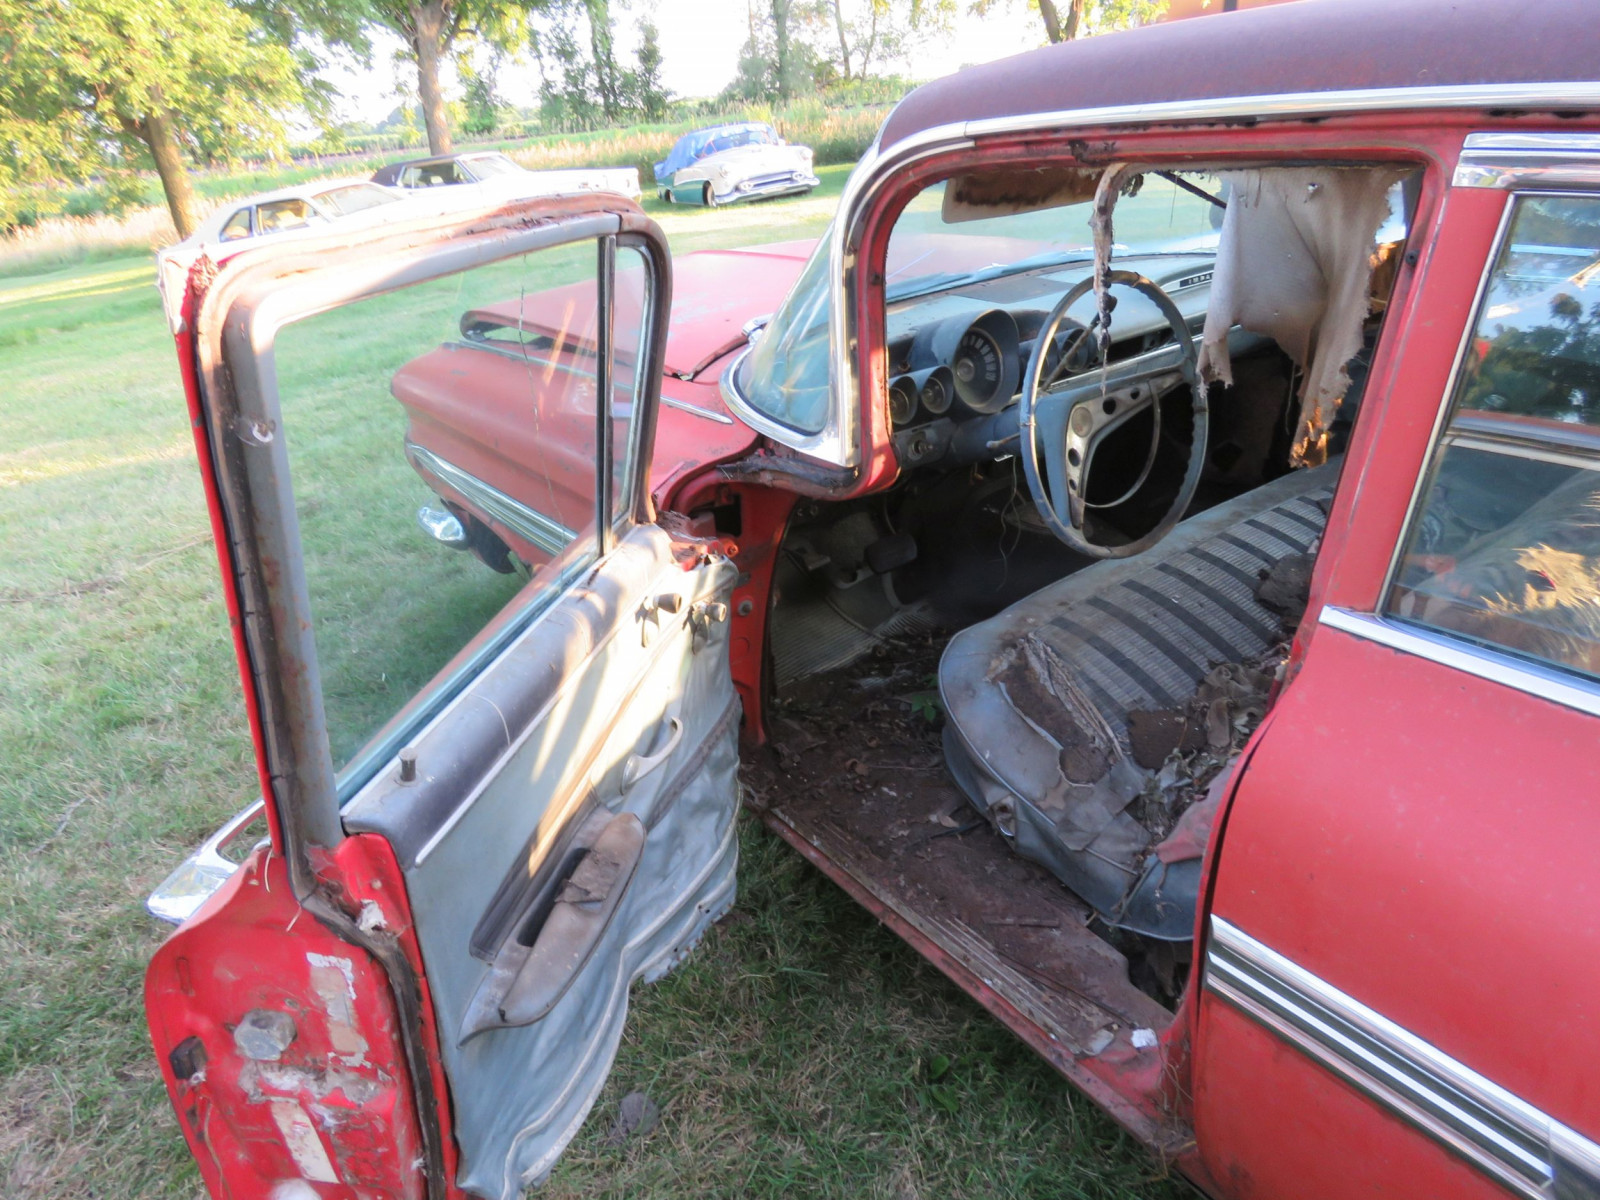 1959 Chevrolet 4dr Sedan for parts or project - Image 8